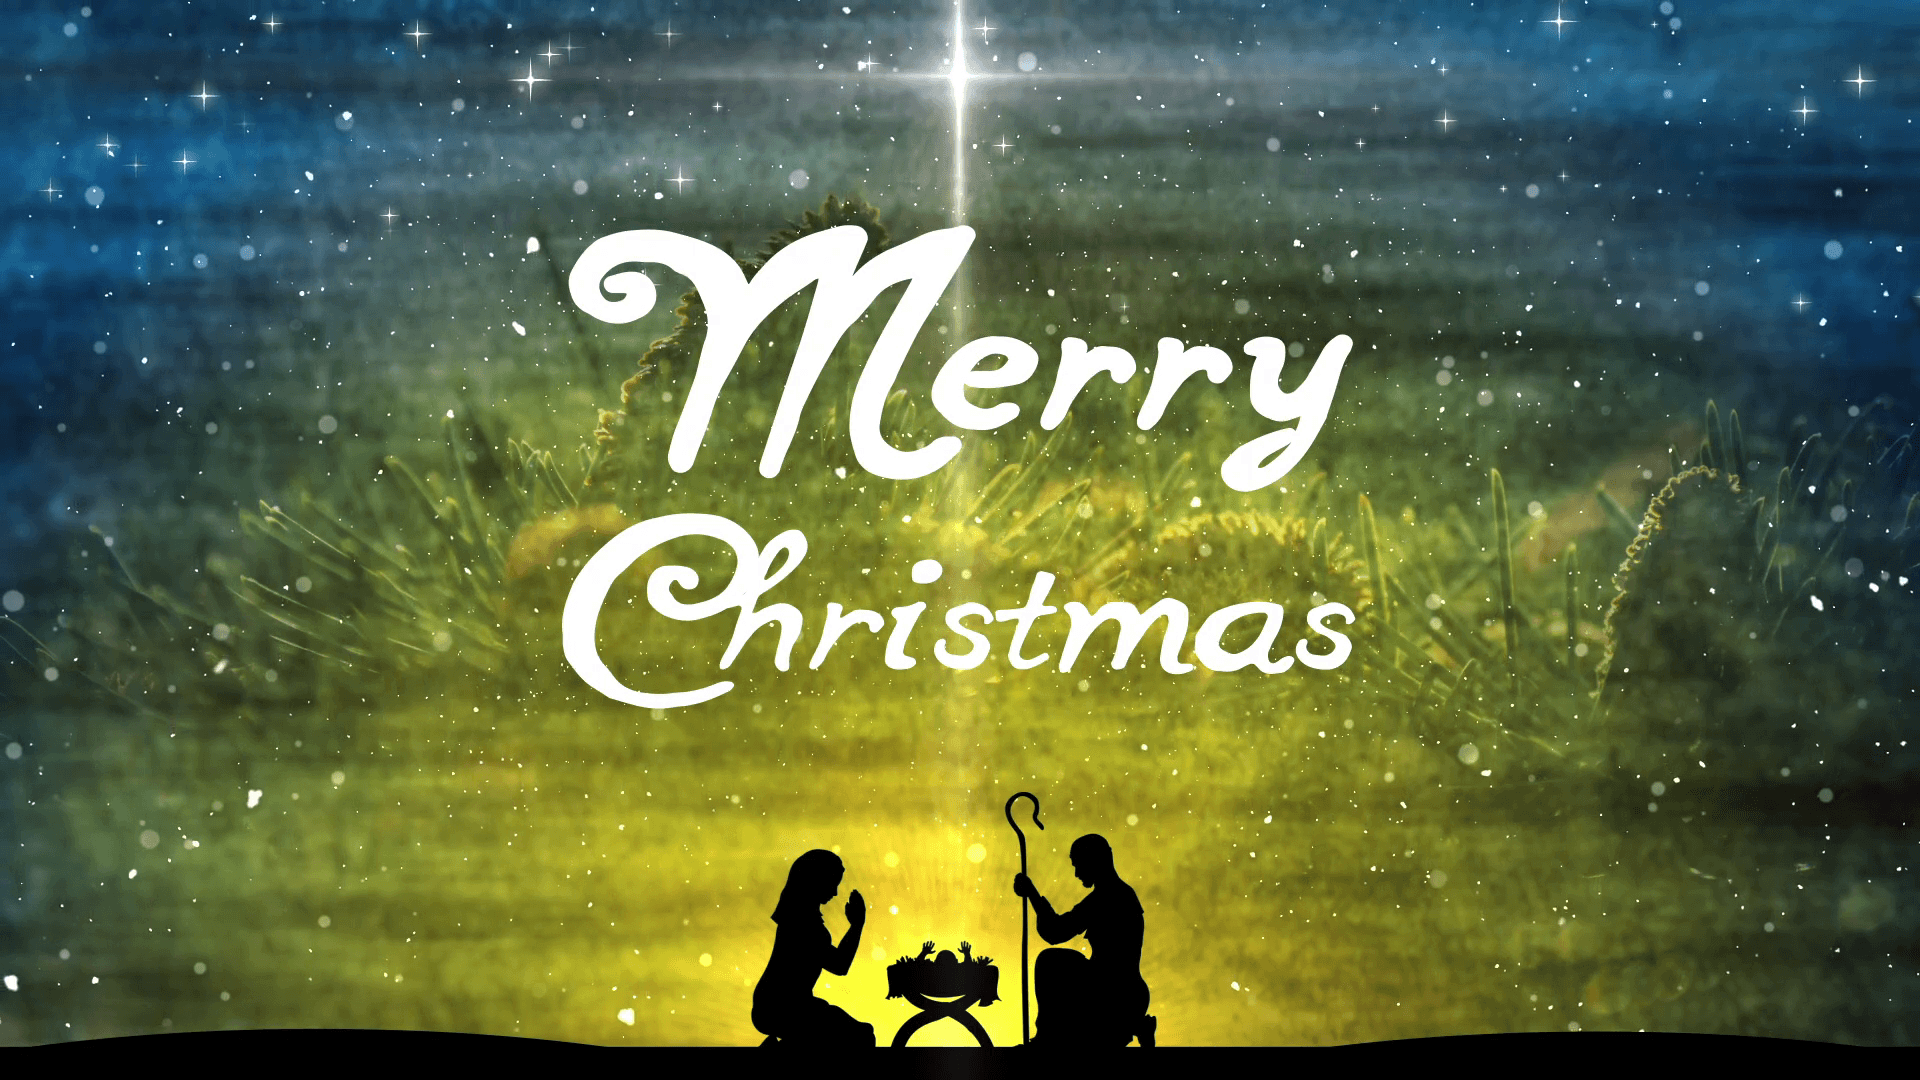 1920x1080 Merry Christmas Title Background. Christmas Nativity Video Motion ...